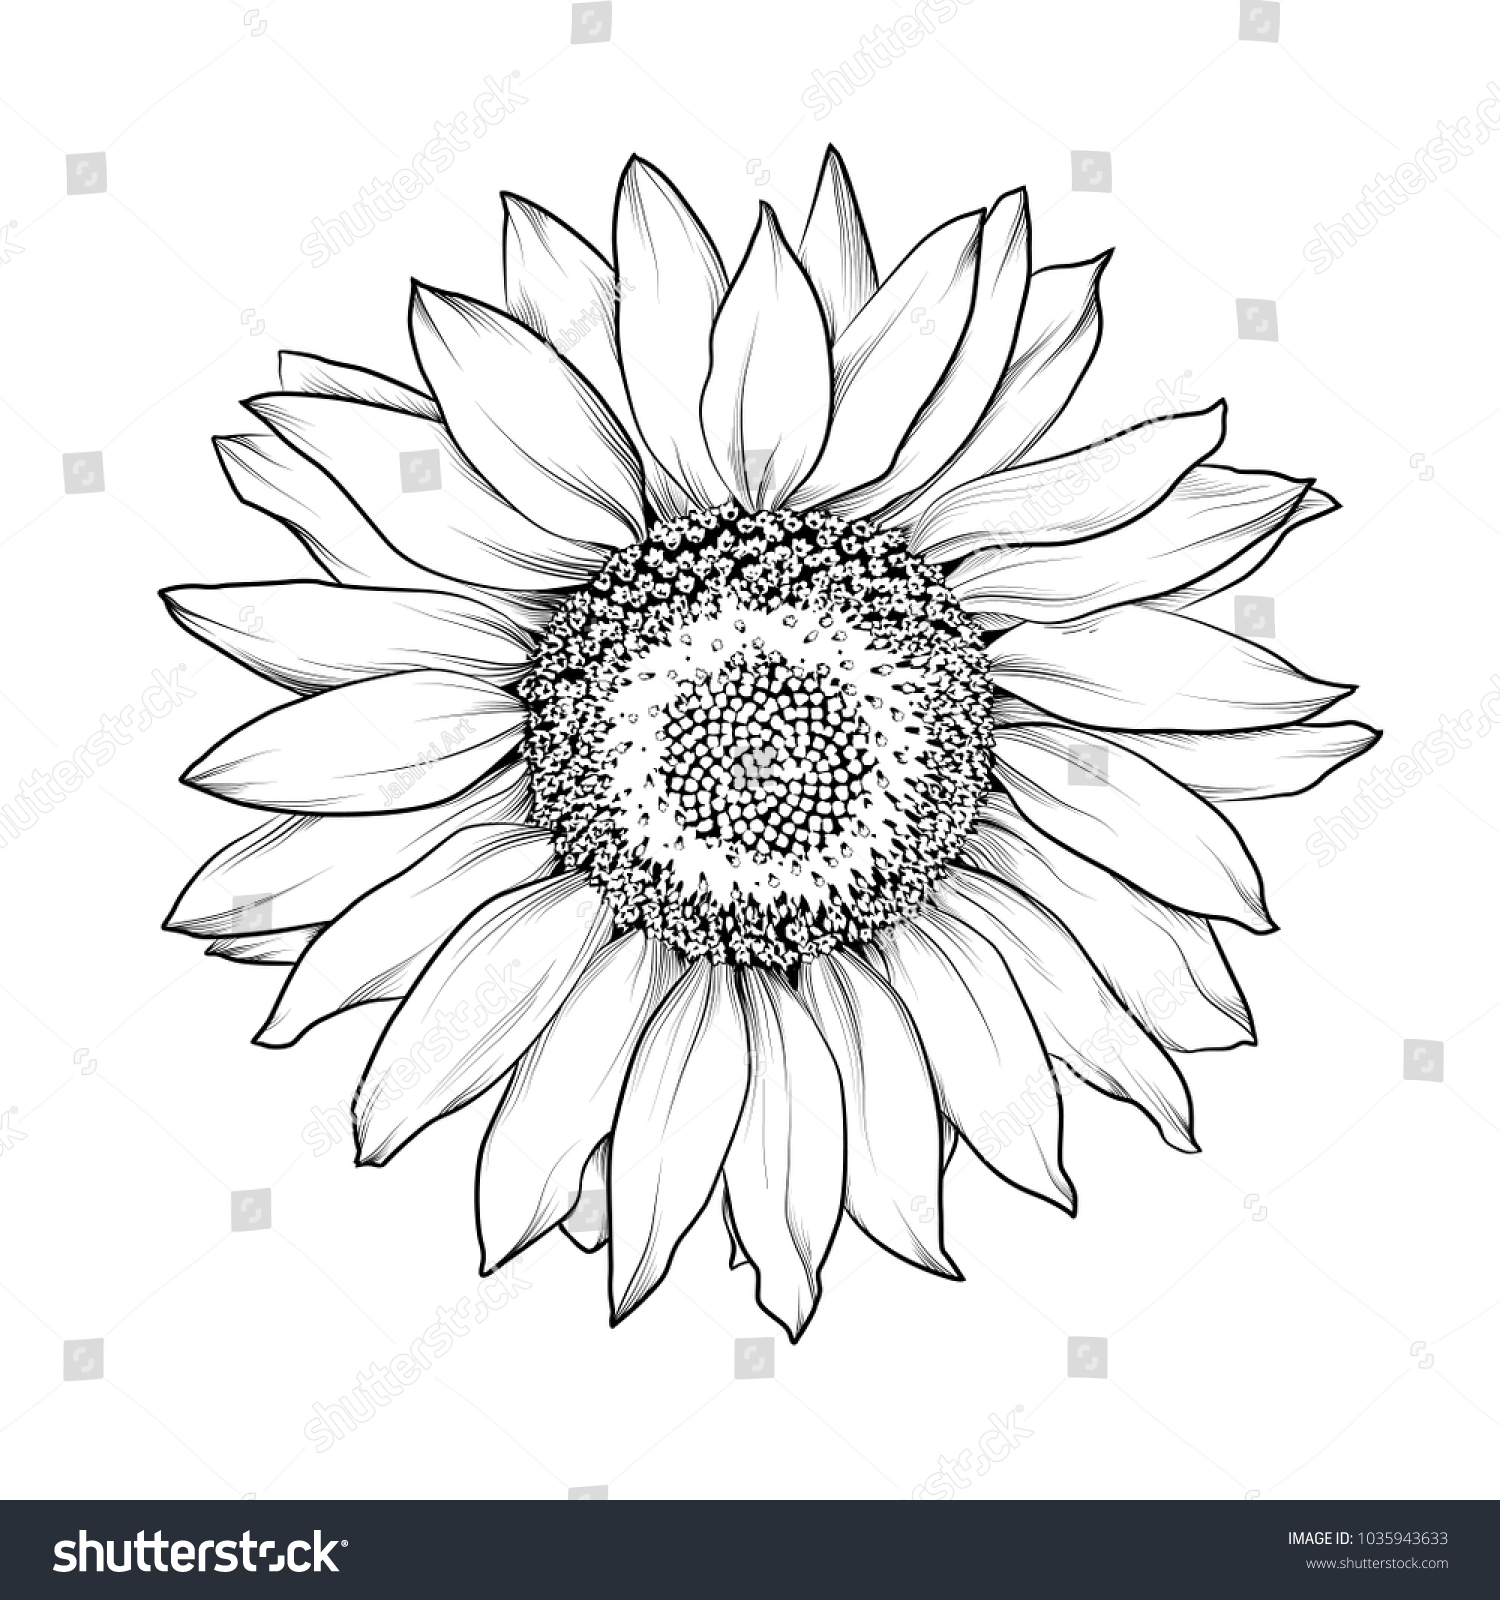 Sunflower isolated on white.